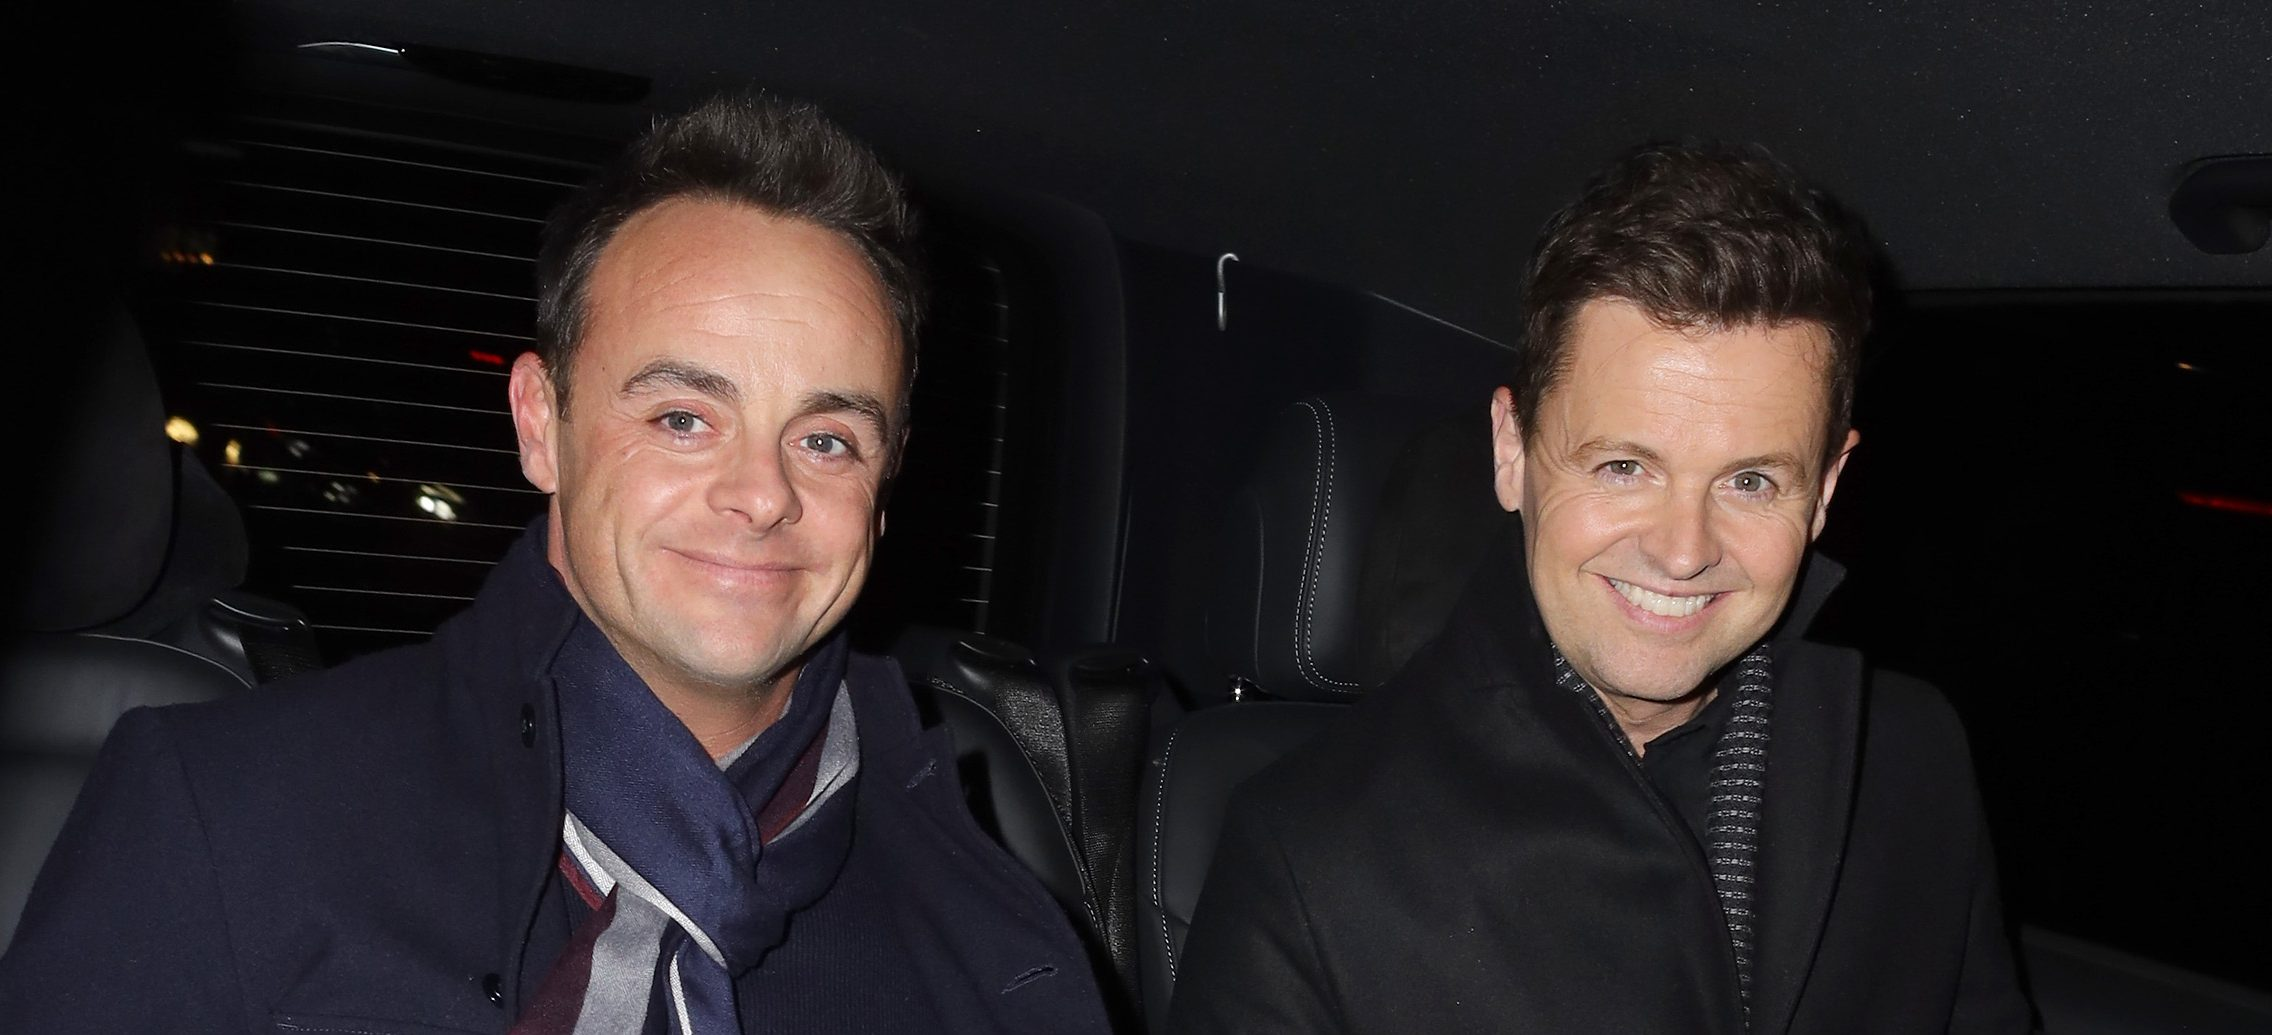 Ant and Dec tease appearance on Jamie Oliver's cooking series